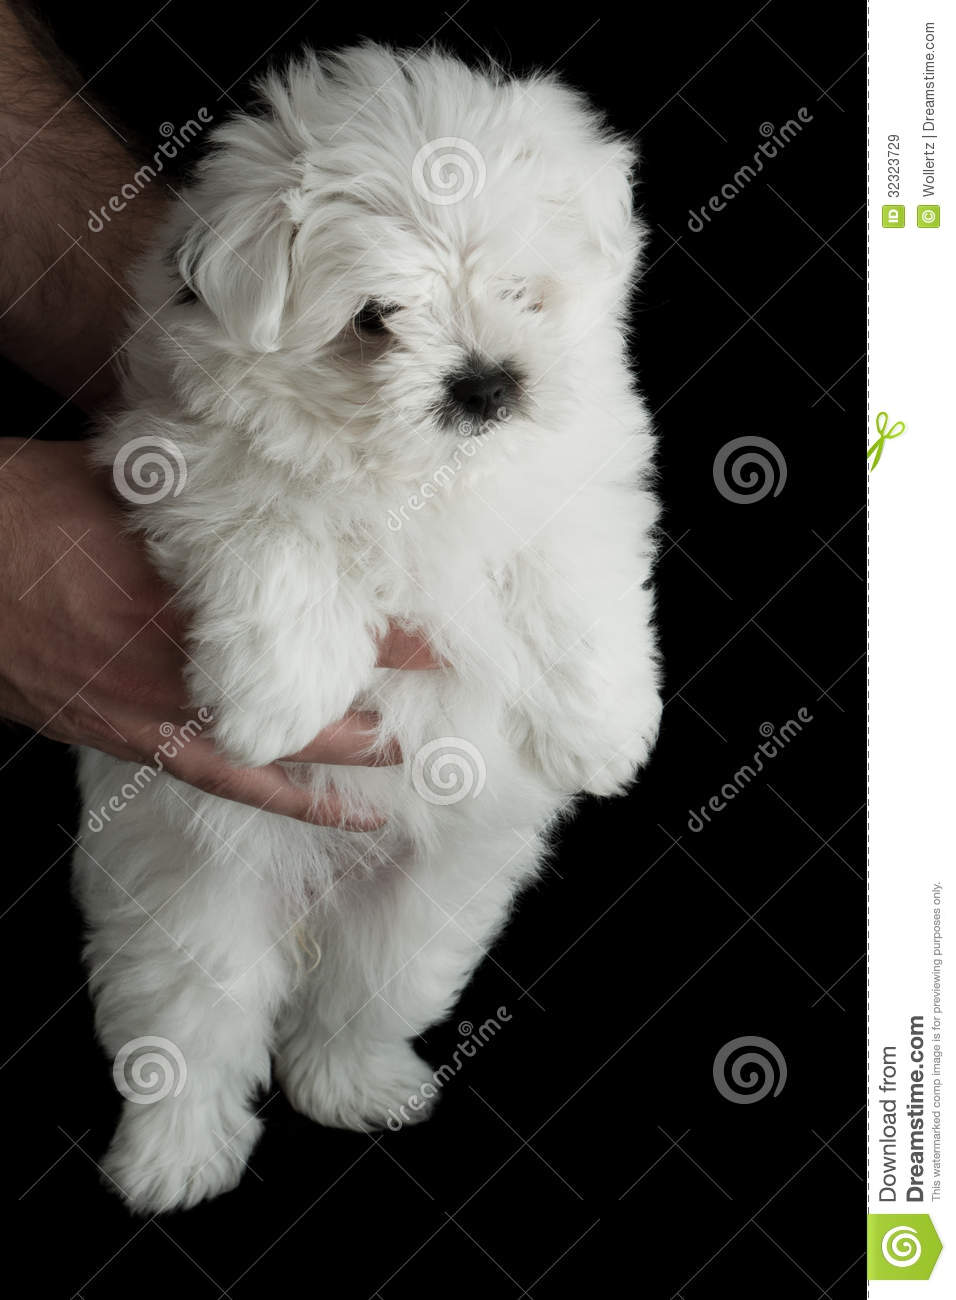 Closeup of a baby poodle isolated on a black background.